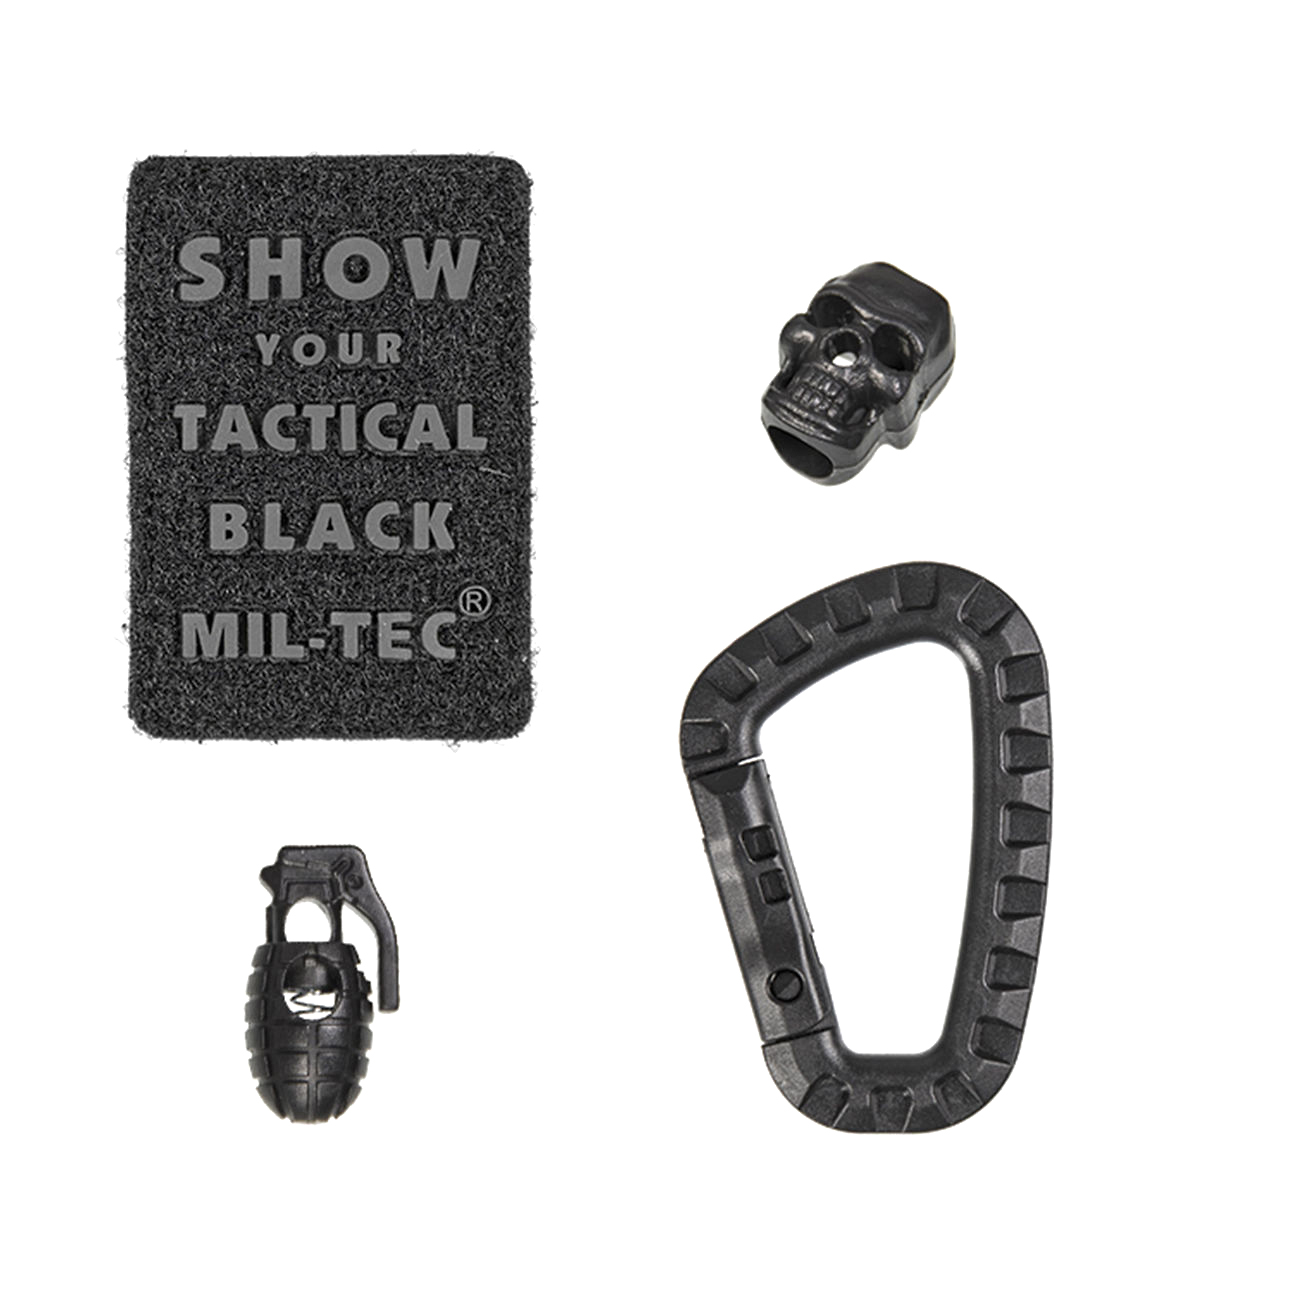 Mil-Tec Rucksack One Strap Assault Pack small 10 Liter tactical black 2